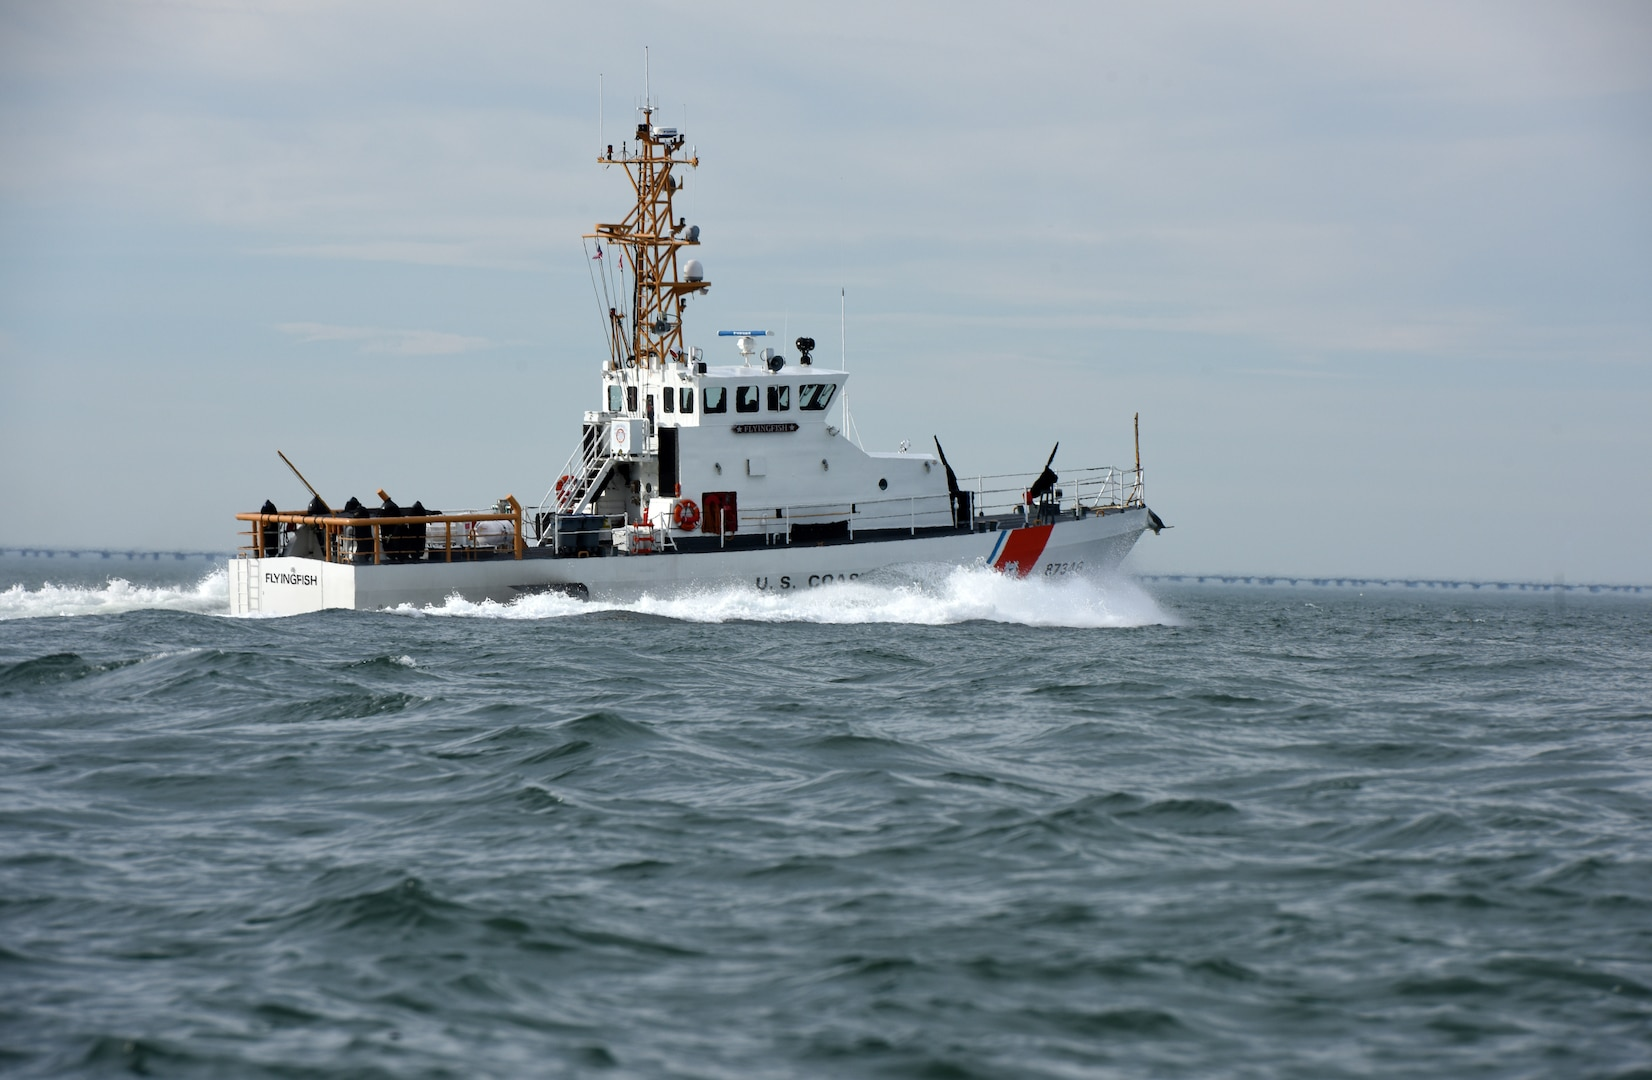 Coast Guard Cutter Flying Fish, an 87-foot patrol boat homeported in Virginia Beach, Virginia, steams north alongside the Chesapeake Bay Bridge-Tunnel off Virginia Beach, Feb. 15, 2018. The cutter's crew of 12 primarily conducts search and rescue and marine fisheries enforcement missions in the lower Chesapeake Bay and off Virginia's coast.